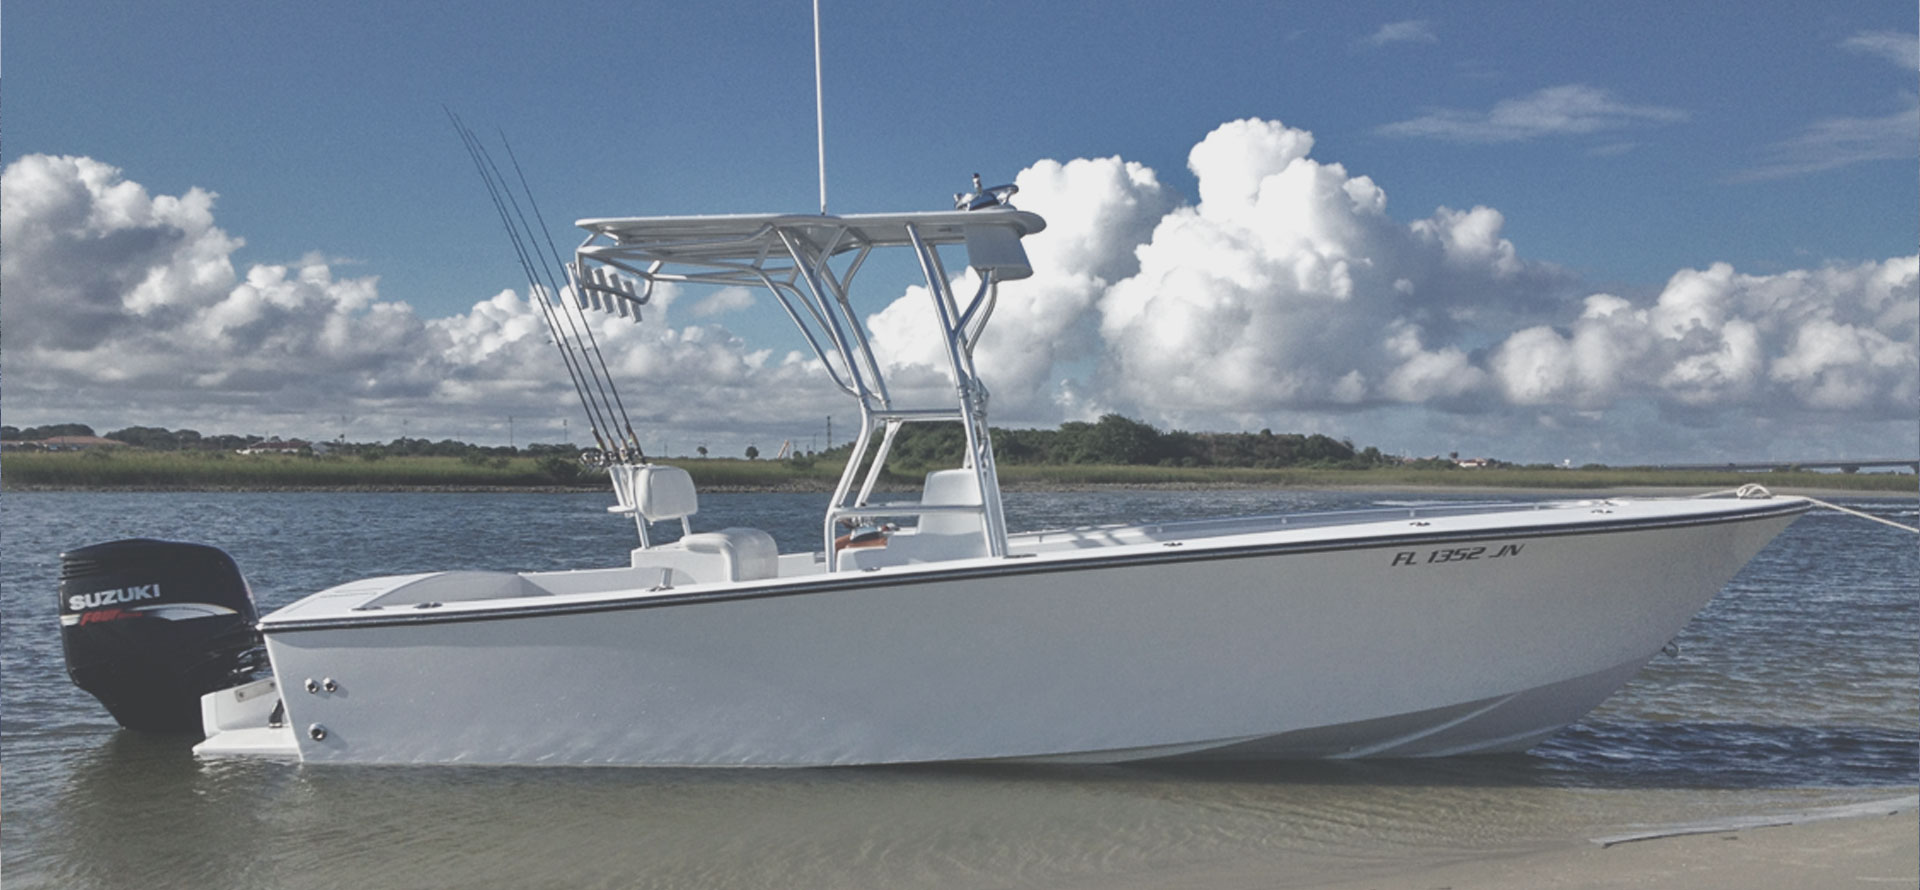 j-hook-fishing-charters-st-augustine-florida-custom-Seacraft-inshore-charter